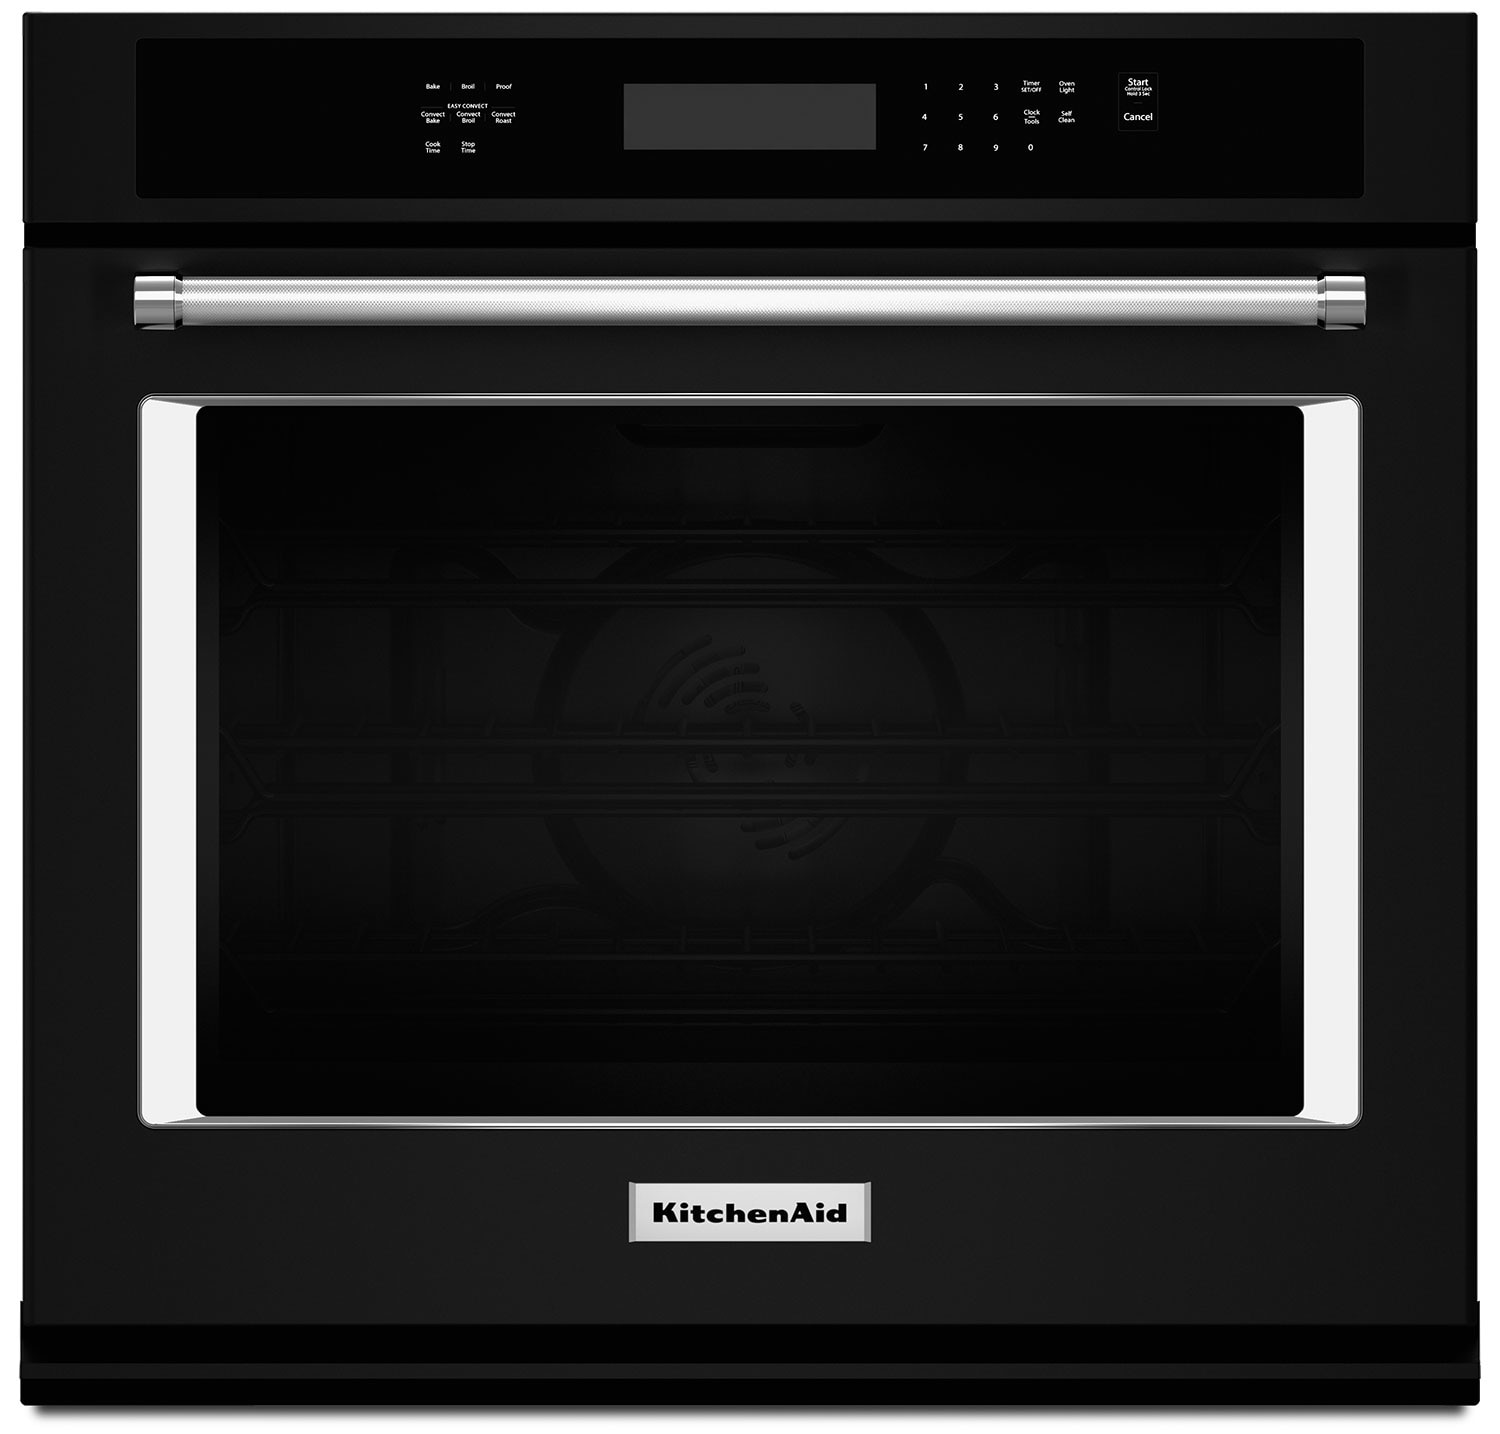 Cooking Products - KitchenAid 5.0 Cu. Ft. Single Wall Oven with Even-Heat™ True Convection - Black